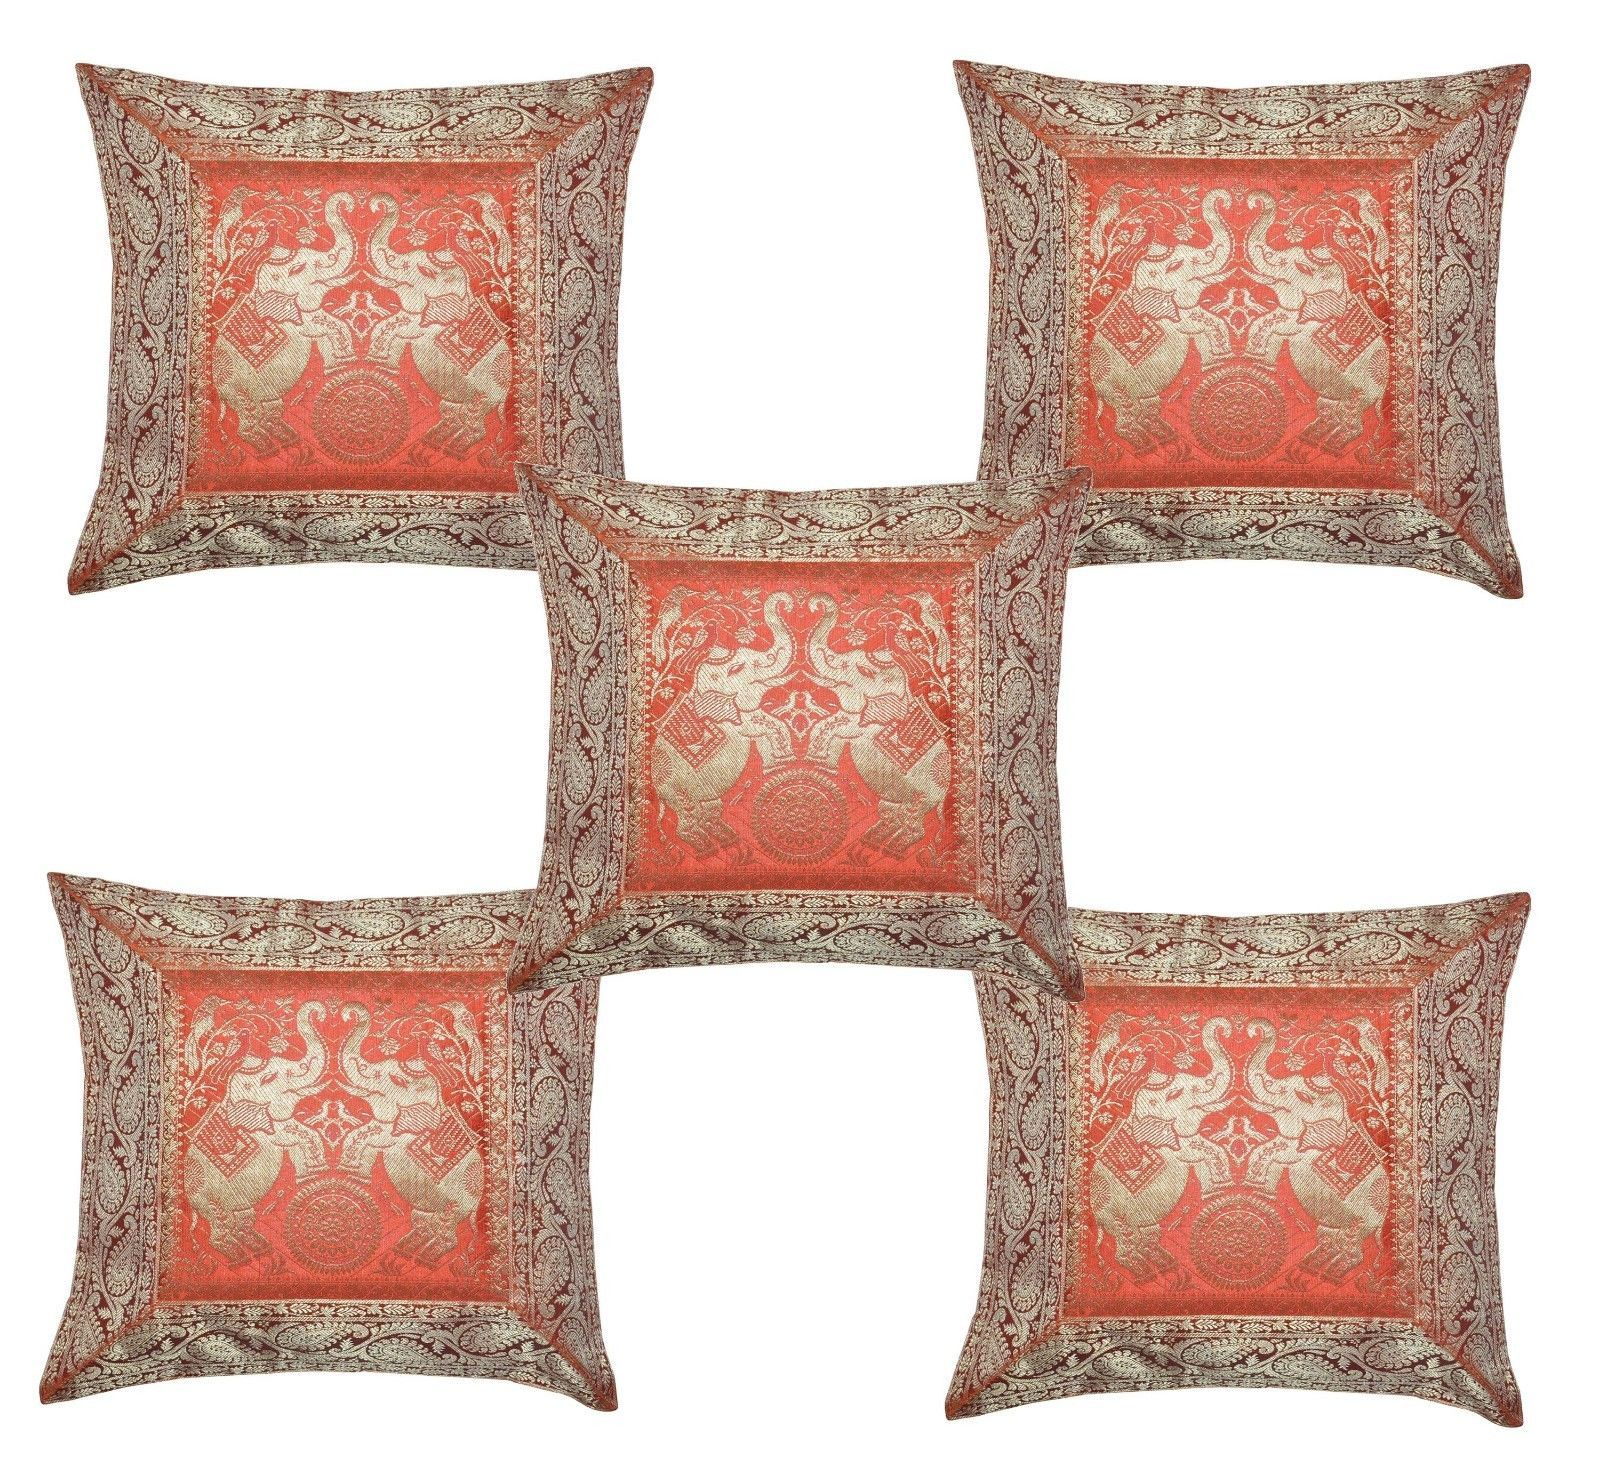 Http Www Bonanzamarketplace Ca Listings 16 Traditional Indian Home Decor Banarsi Brocade Silk Cushion Pillow Cover 5pcs 154023589